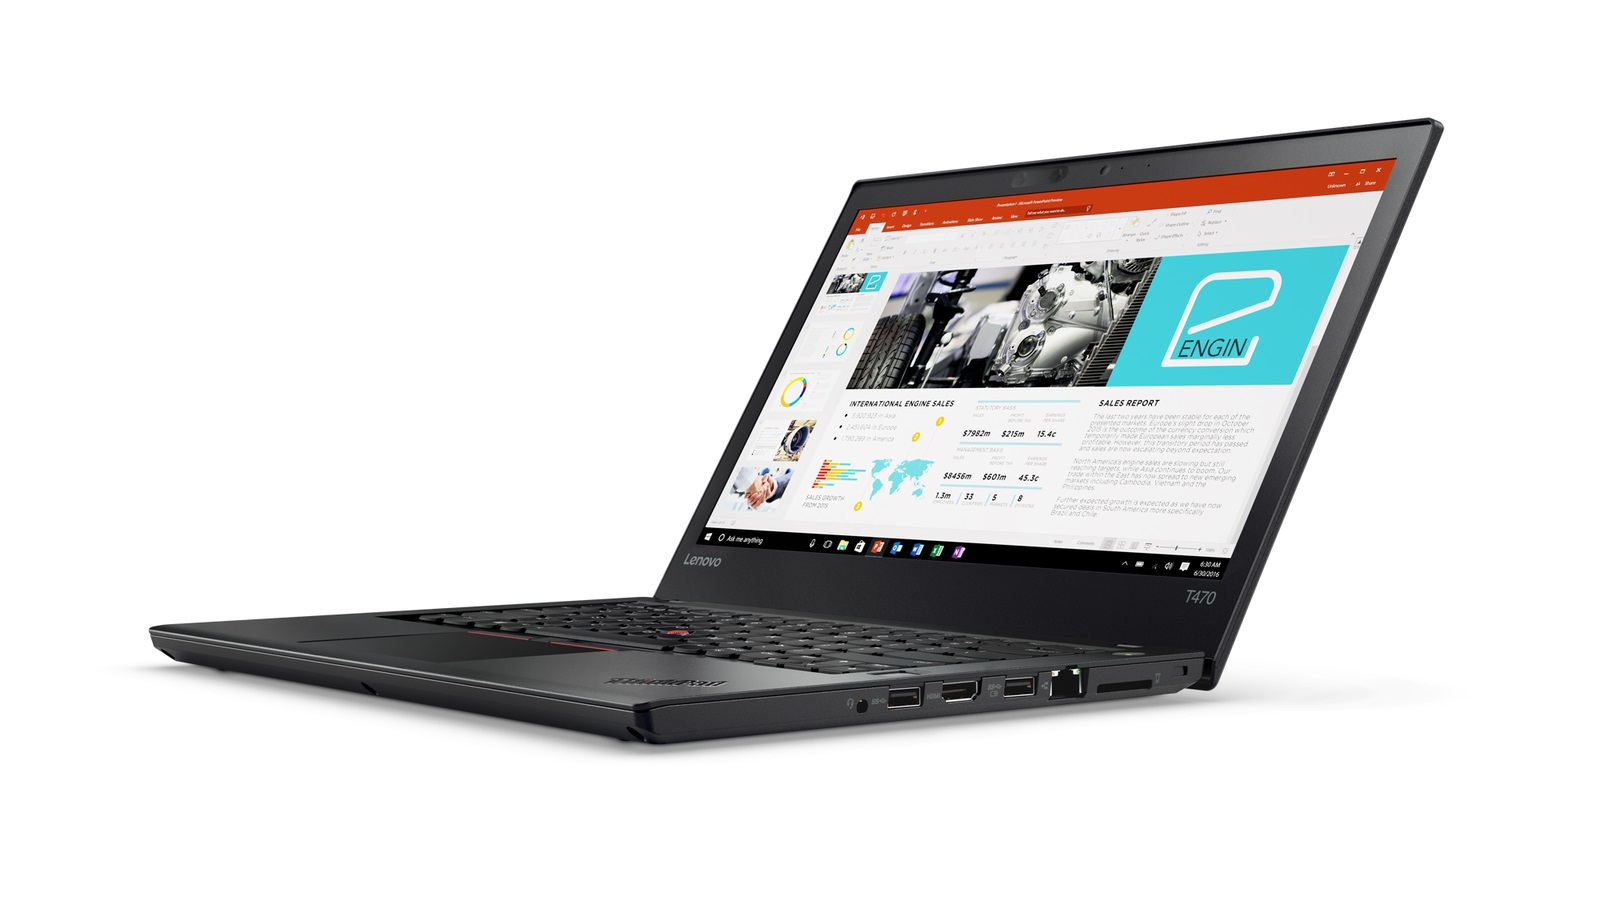 20HD000LMC Lenovo Thinkpad T470 14F/i7-7600U/8GB/256SSD/Intel HD Graphics/F/W10P/černý